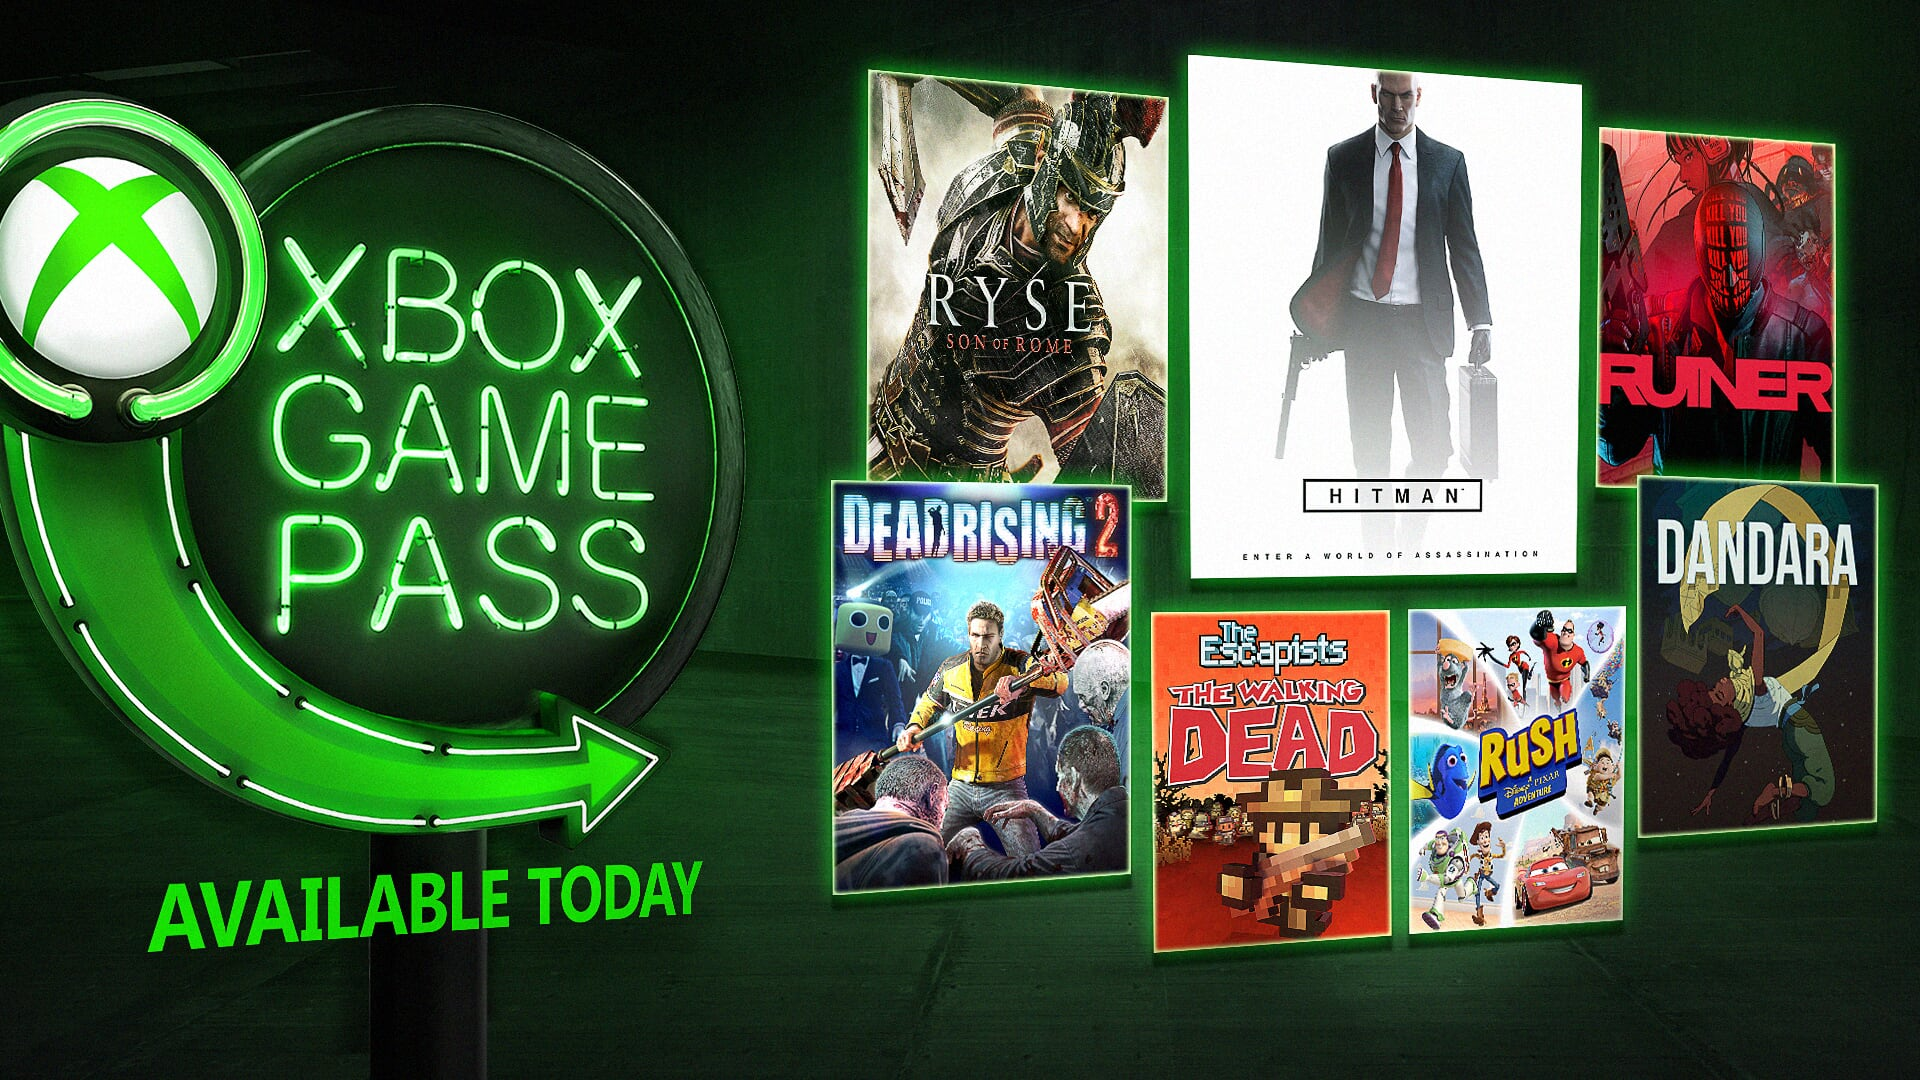 hight resolution of new xbox game pass games for august include hitman season 1 ruiner ryse son of rome and more 0 02 9